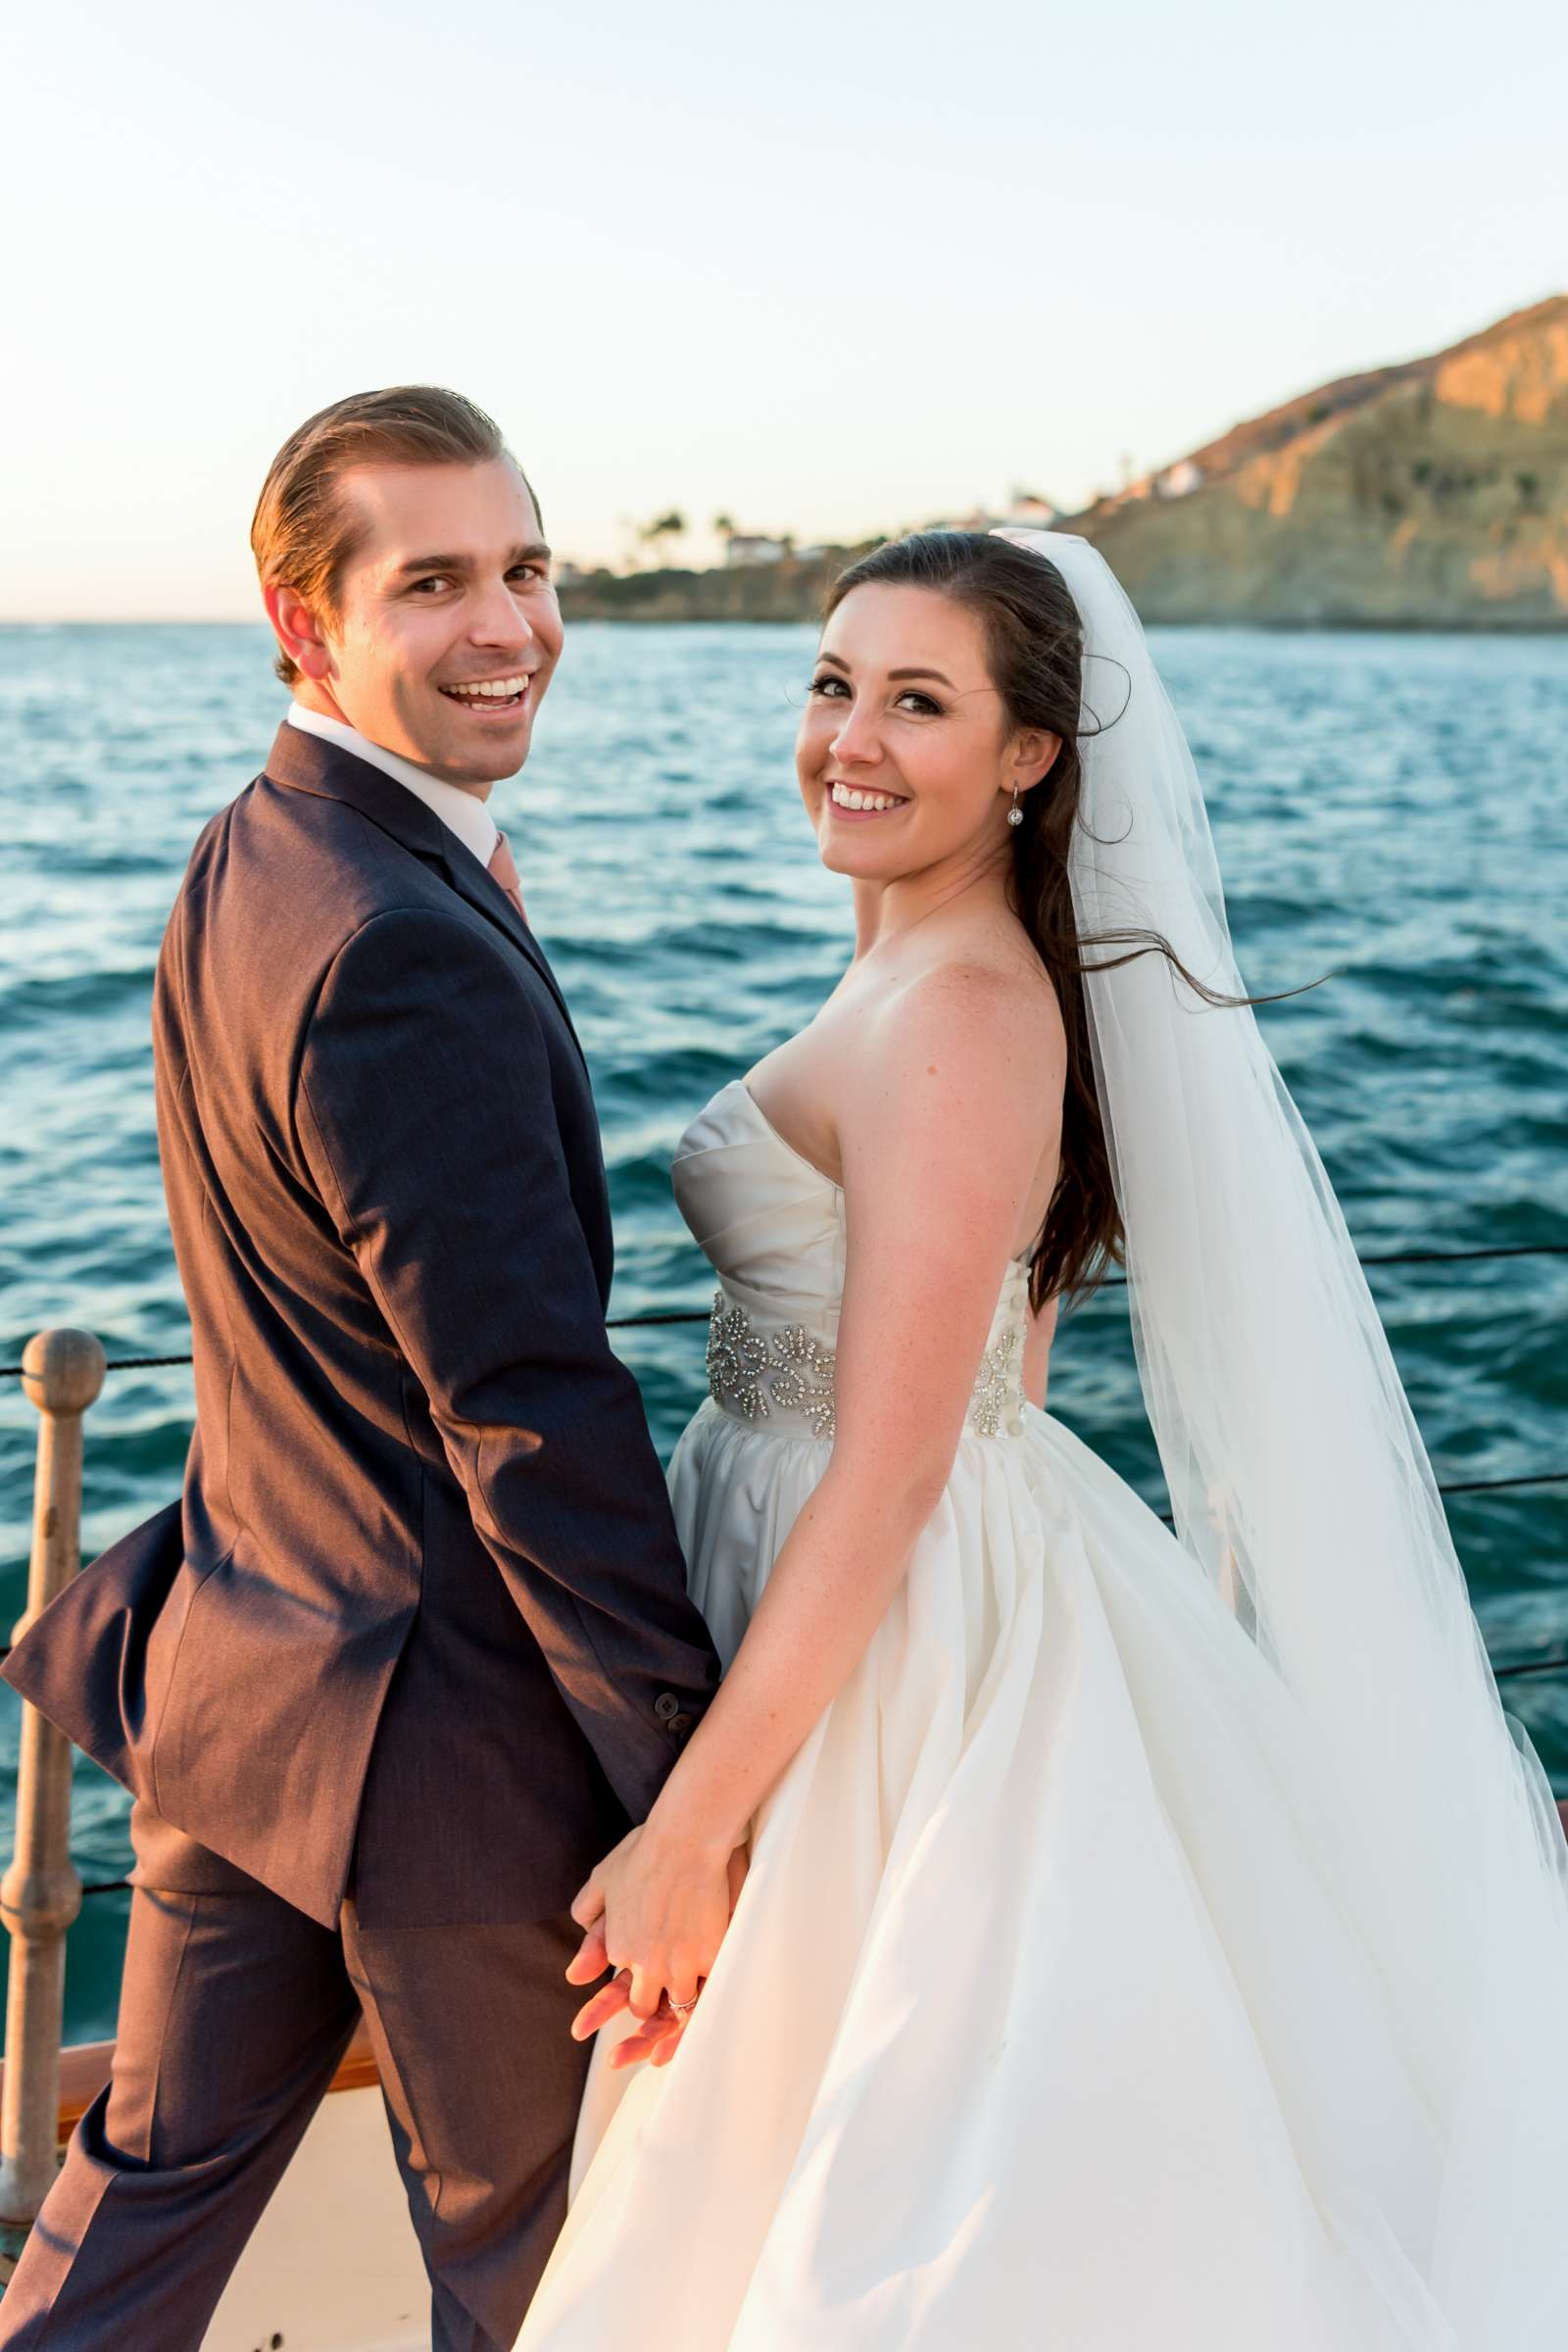 The America - Next Level Sailing Wedding, Tracy and Jarred Wedding Photo #21 by True Photography